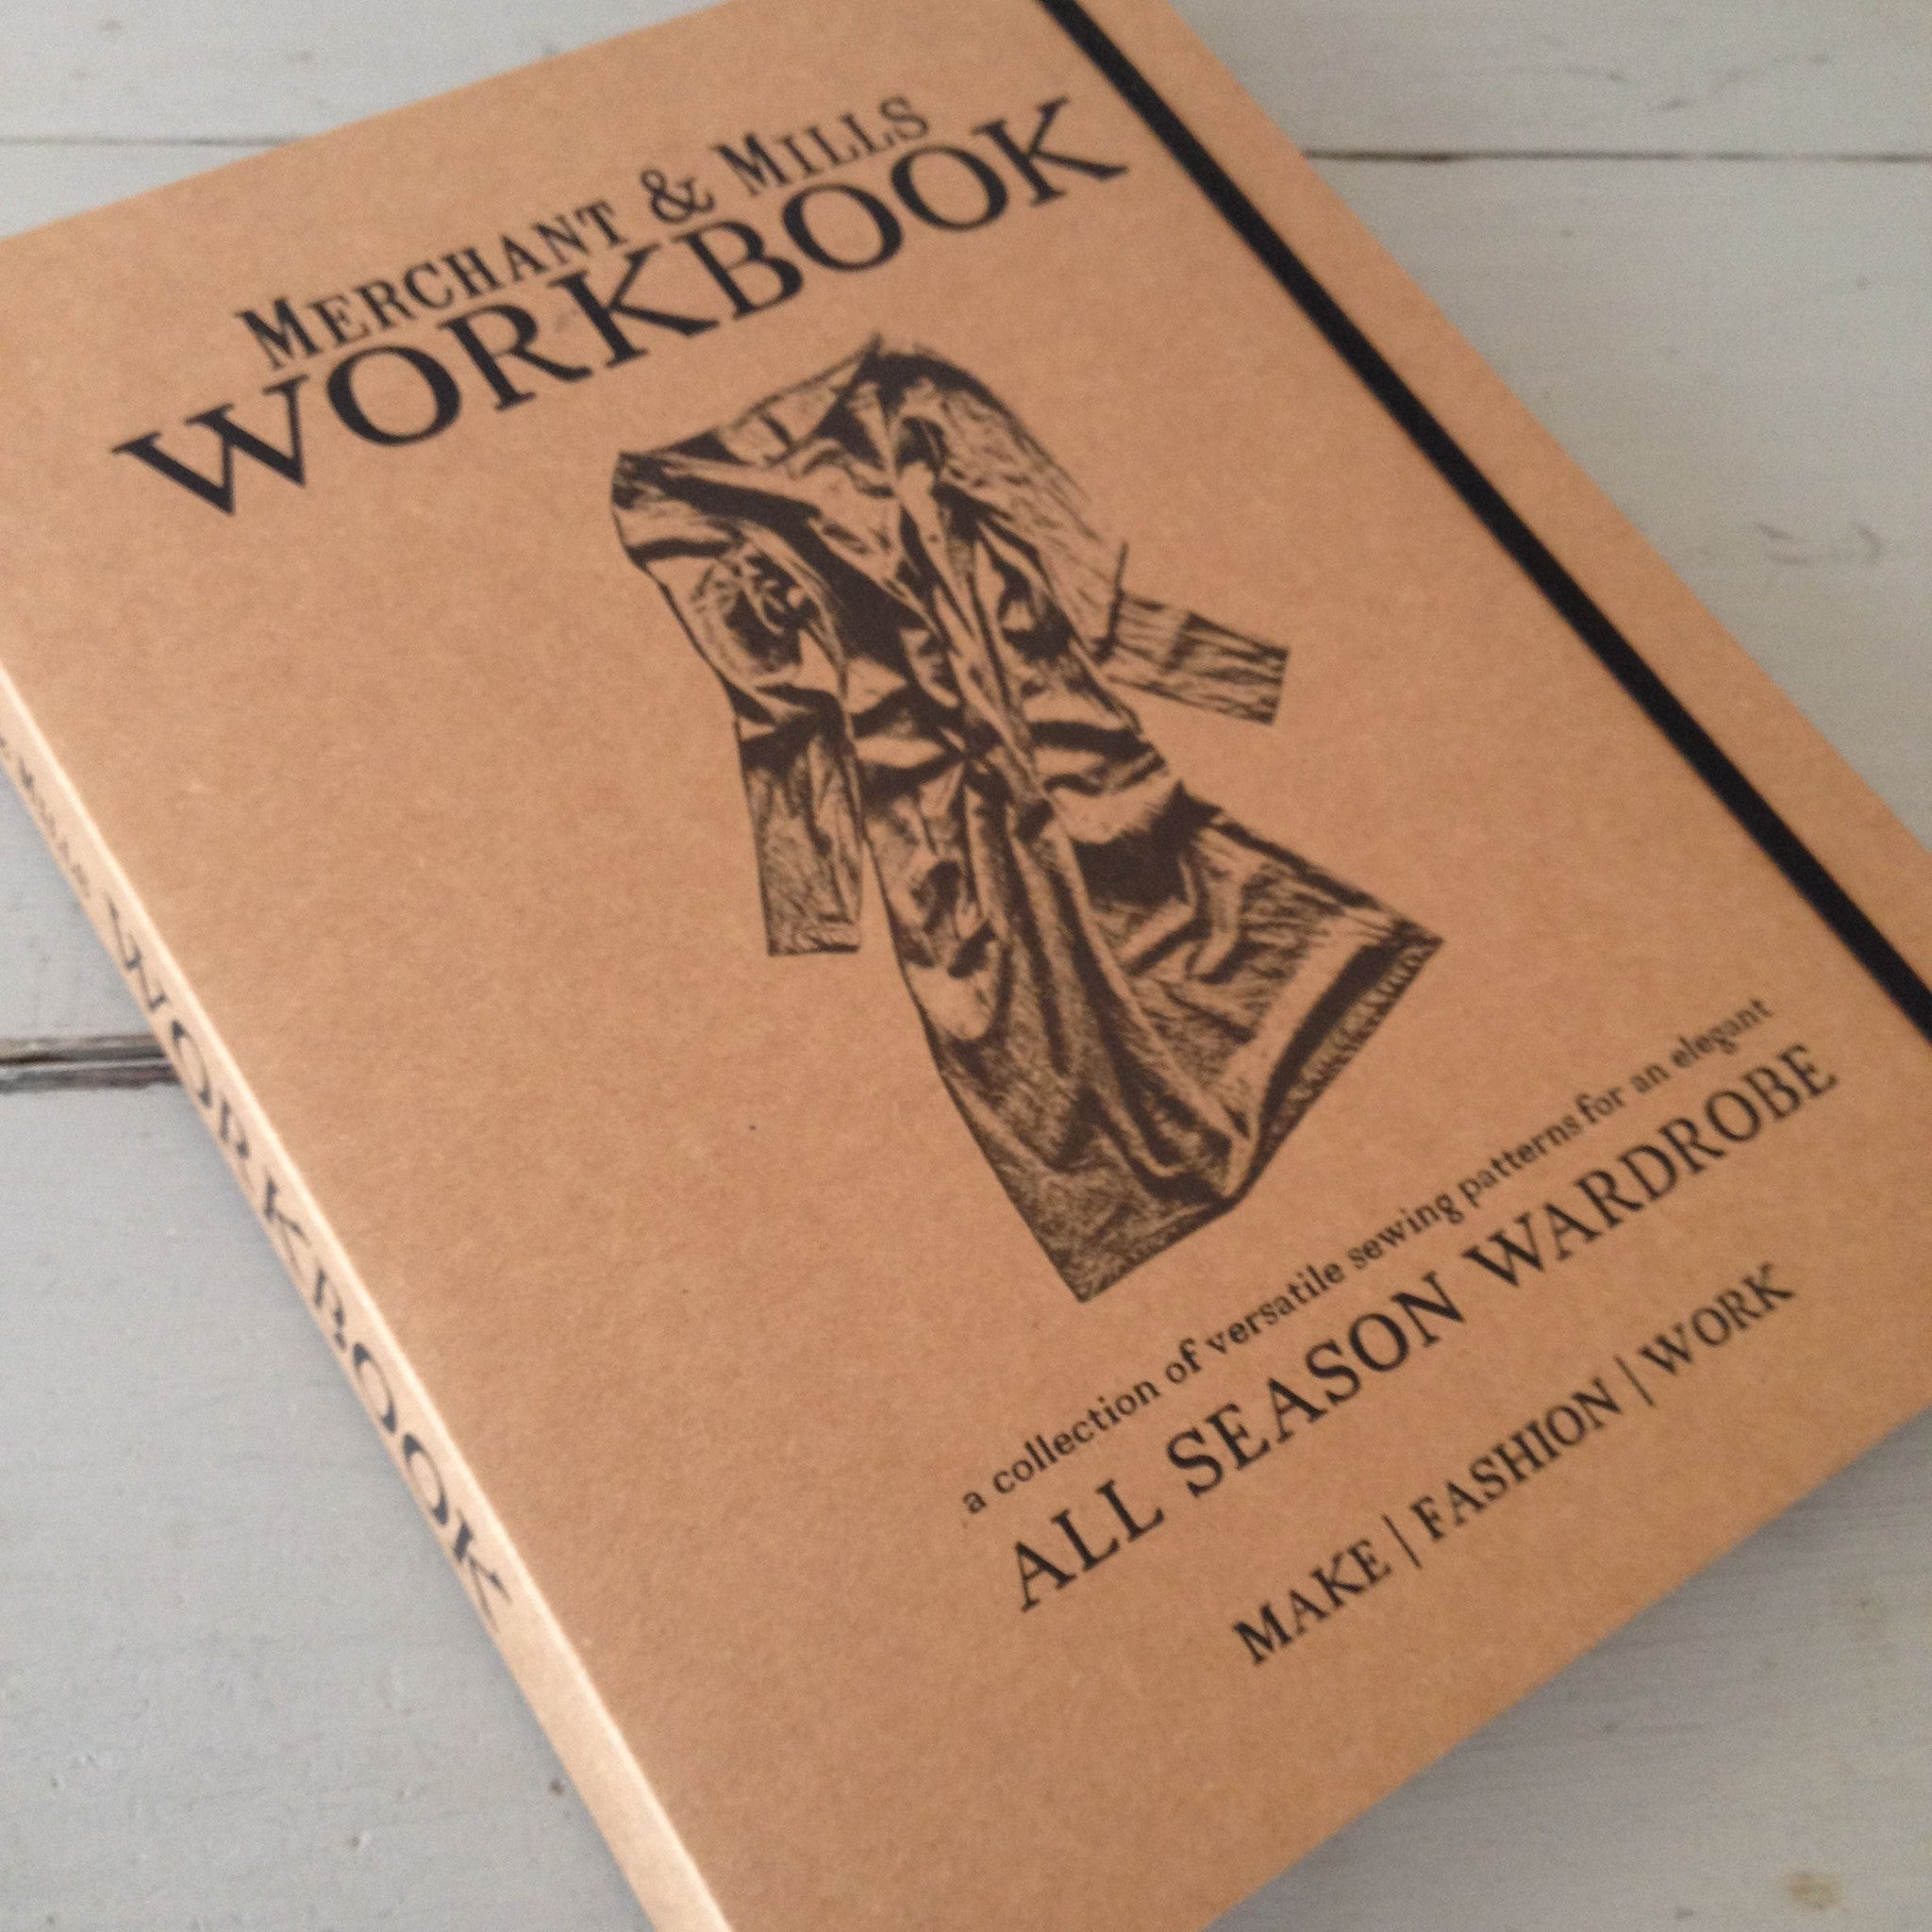 Merchant & Mills Workbook